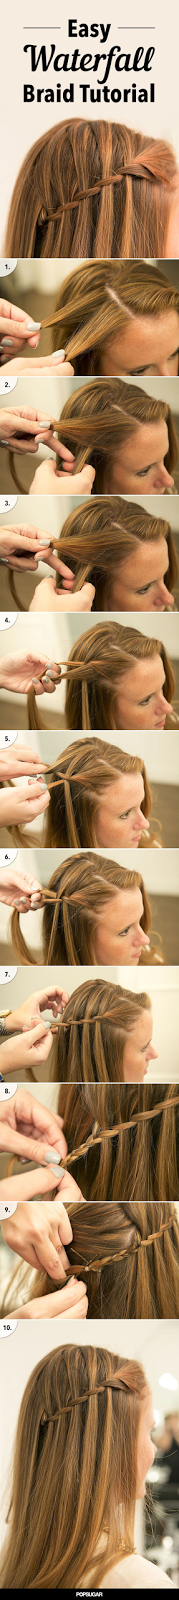 Learn How to DIY the Waterfall Braid Once and For All